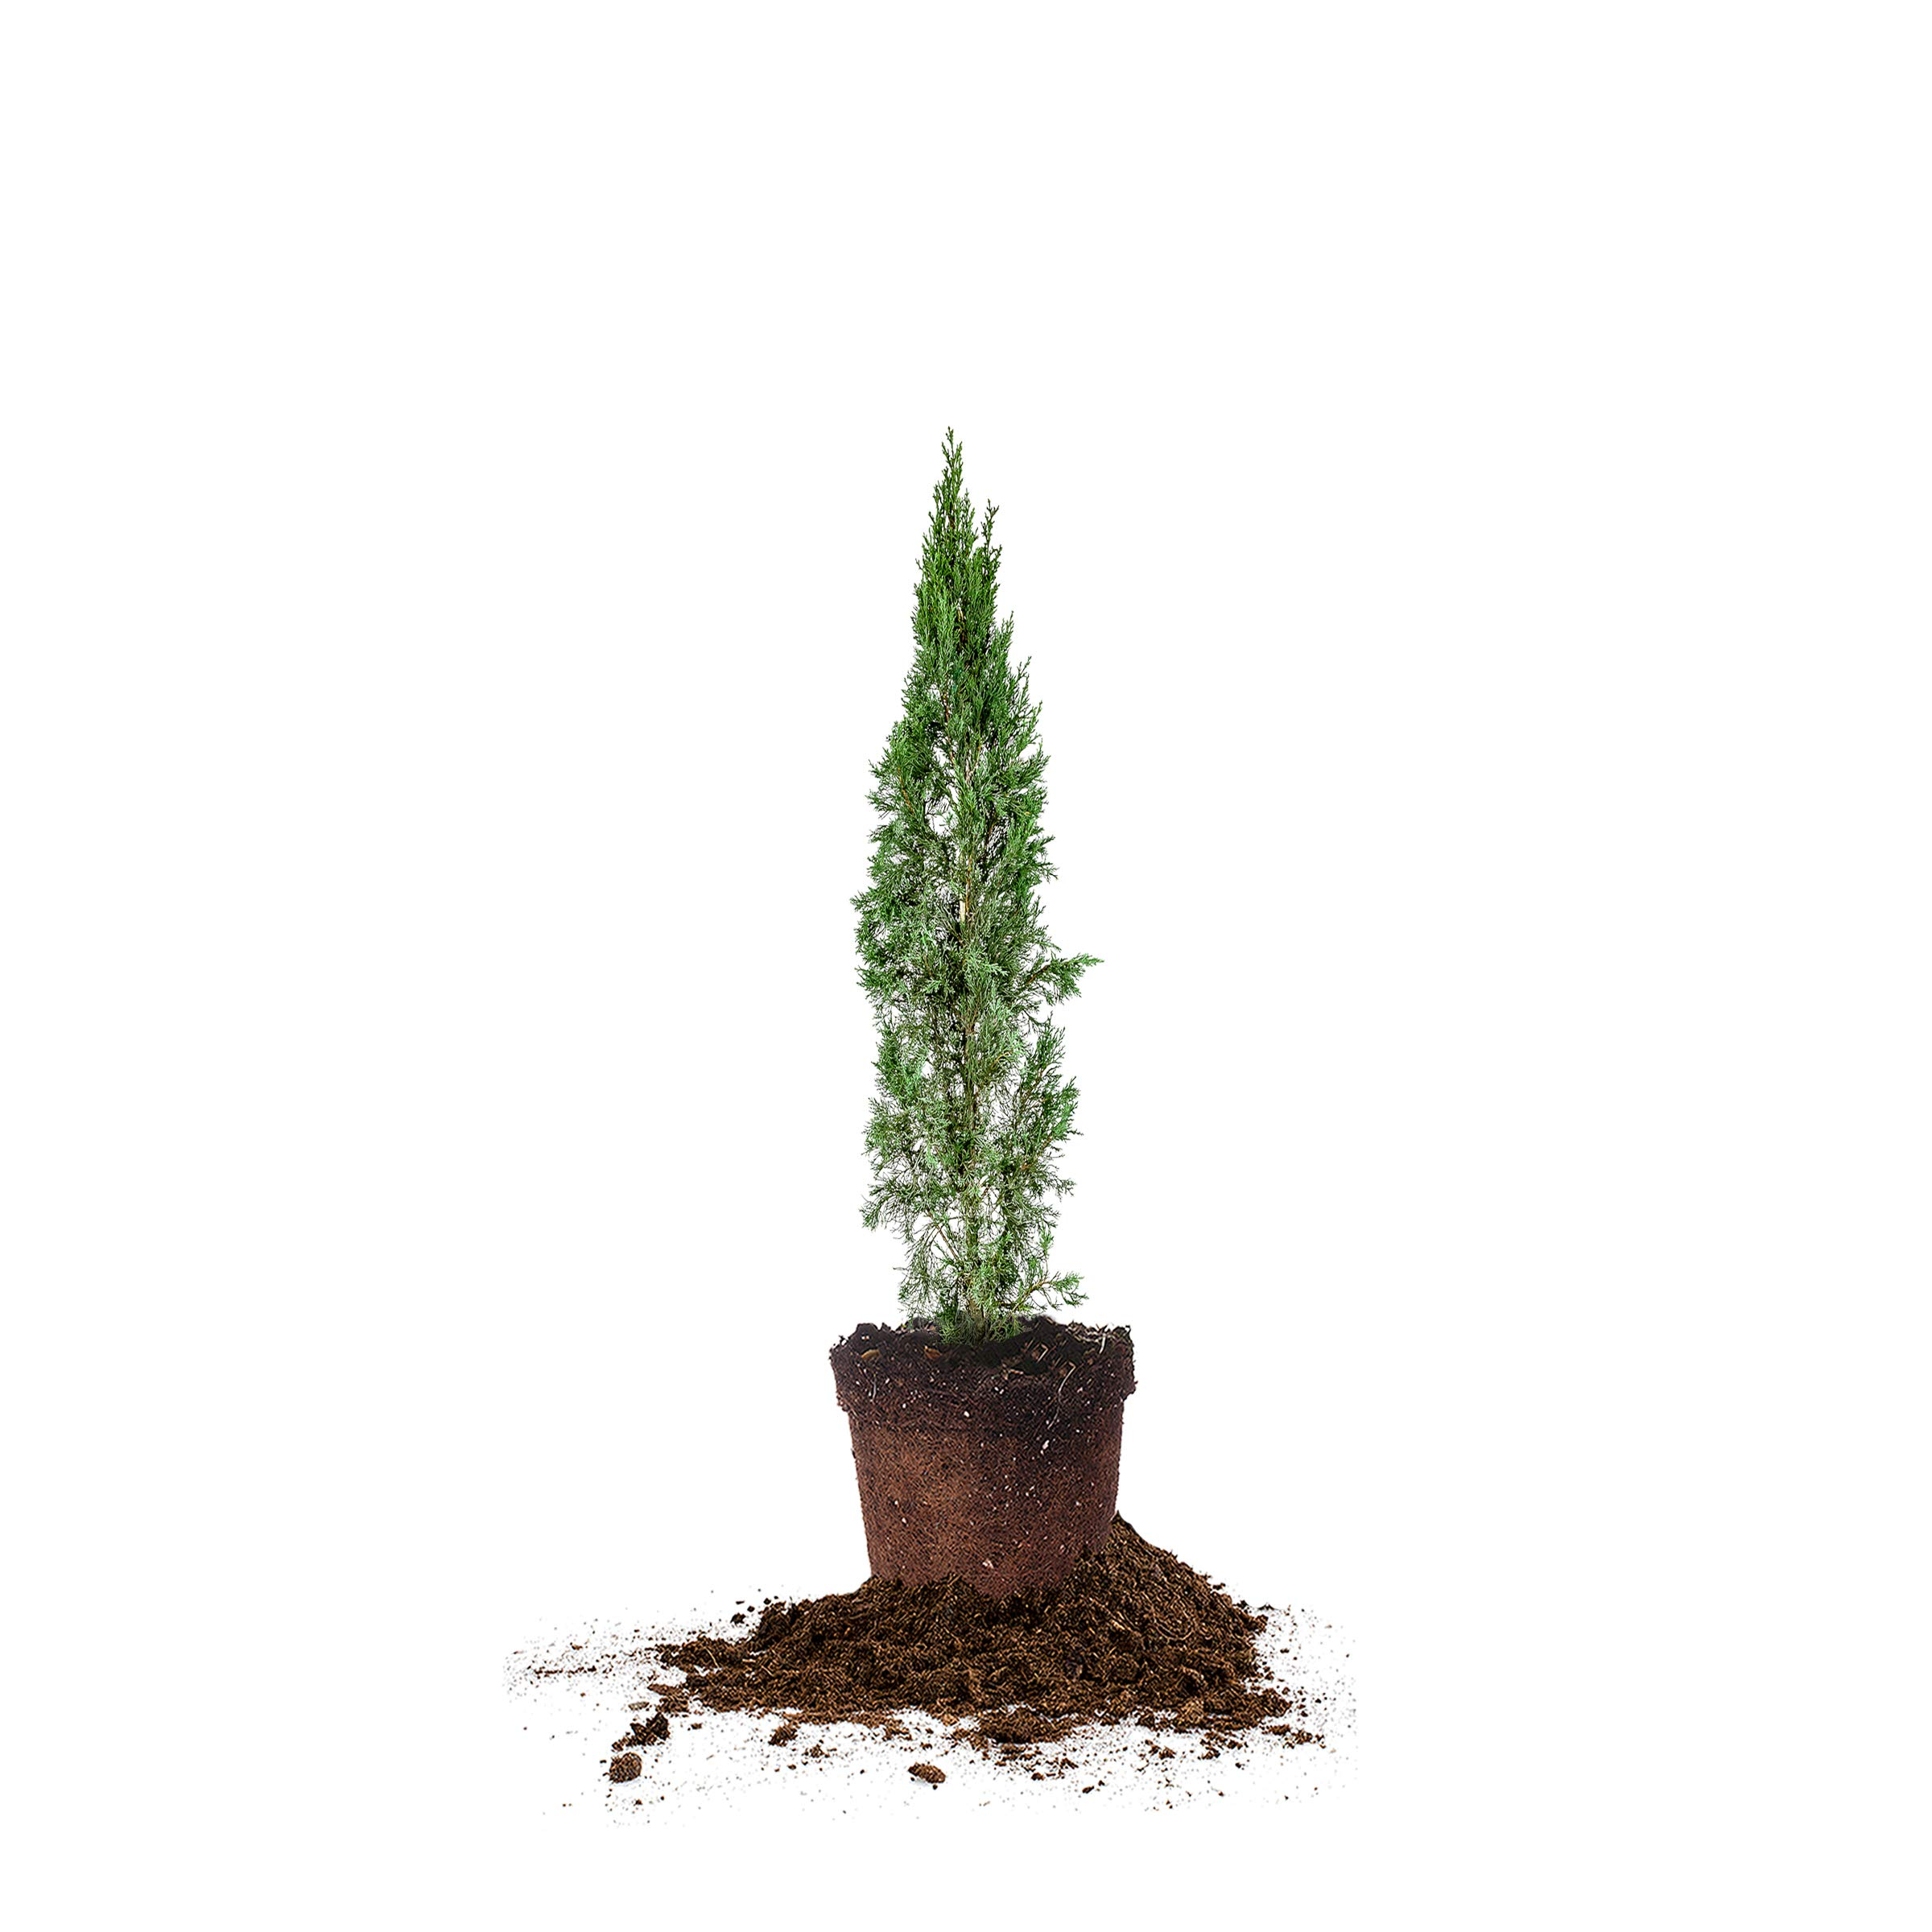 Perfect Plants Italian Cypress Live Plant, 2-3', Includes Care Guide